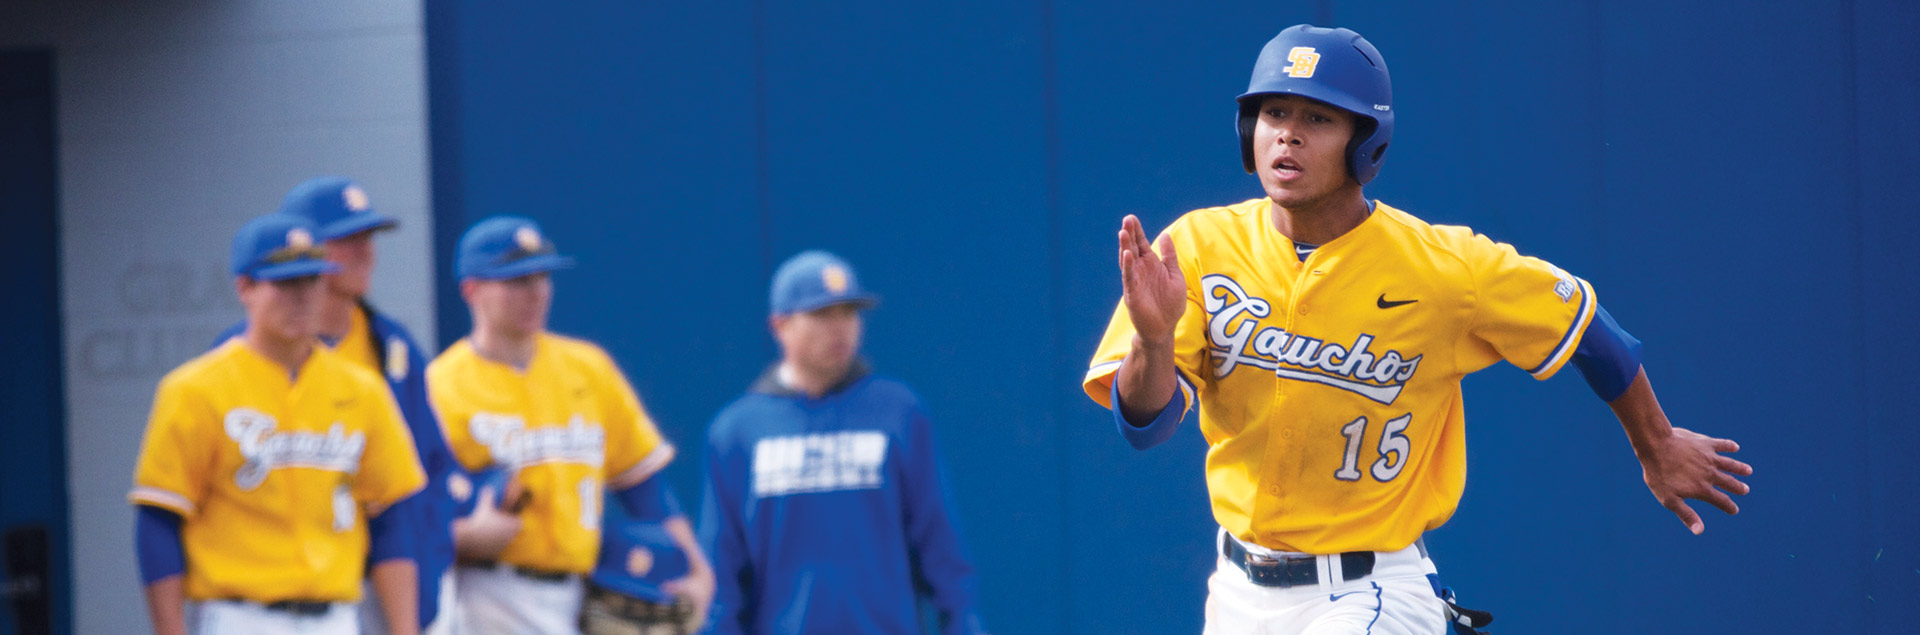 UCSB Gauchos baseball team